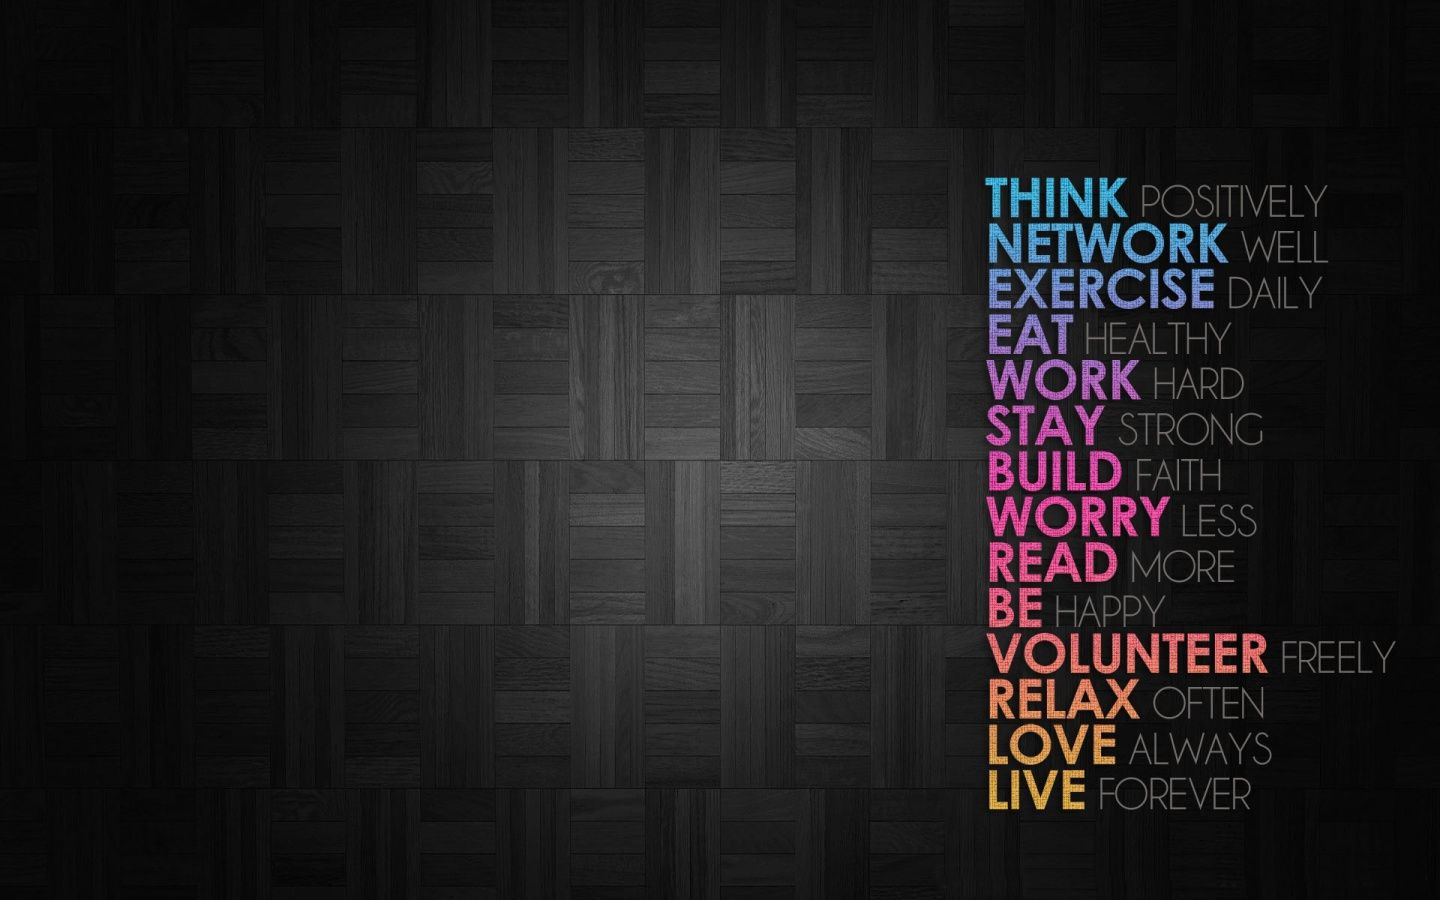 Interesting 88 HD Motivational Black And White Wallpaper With Quotes